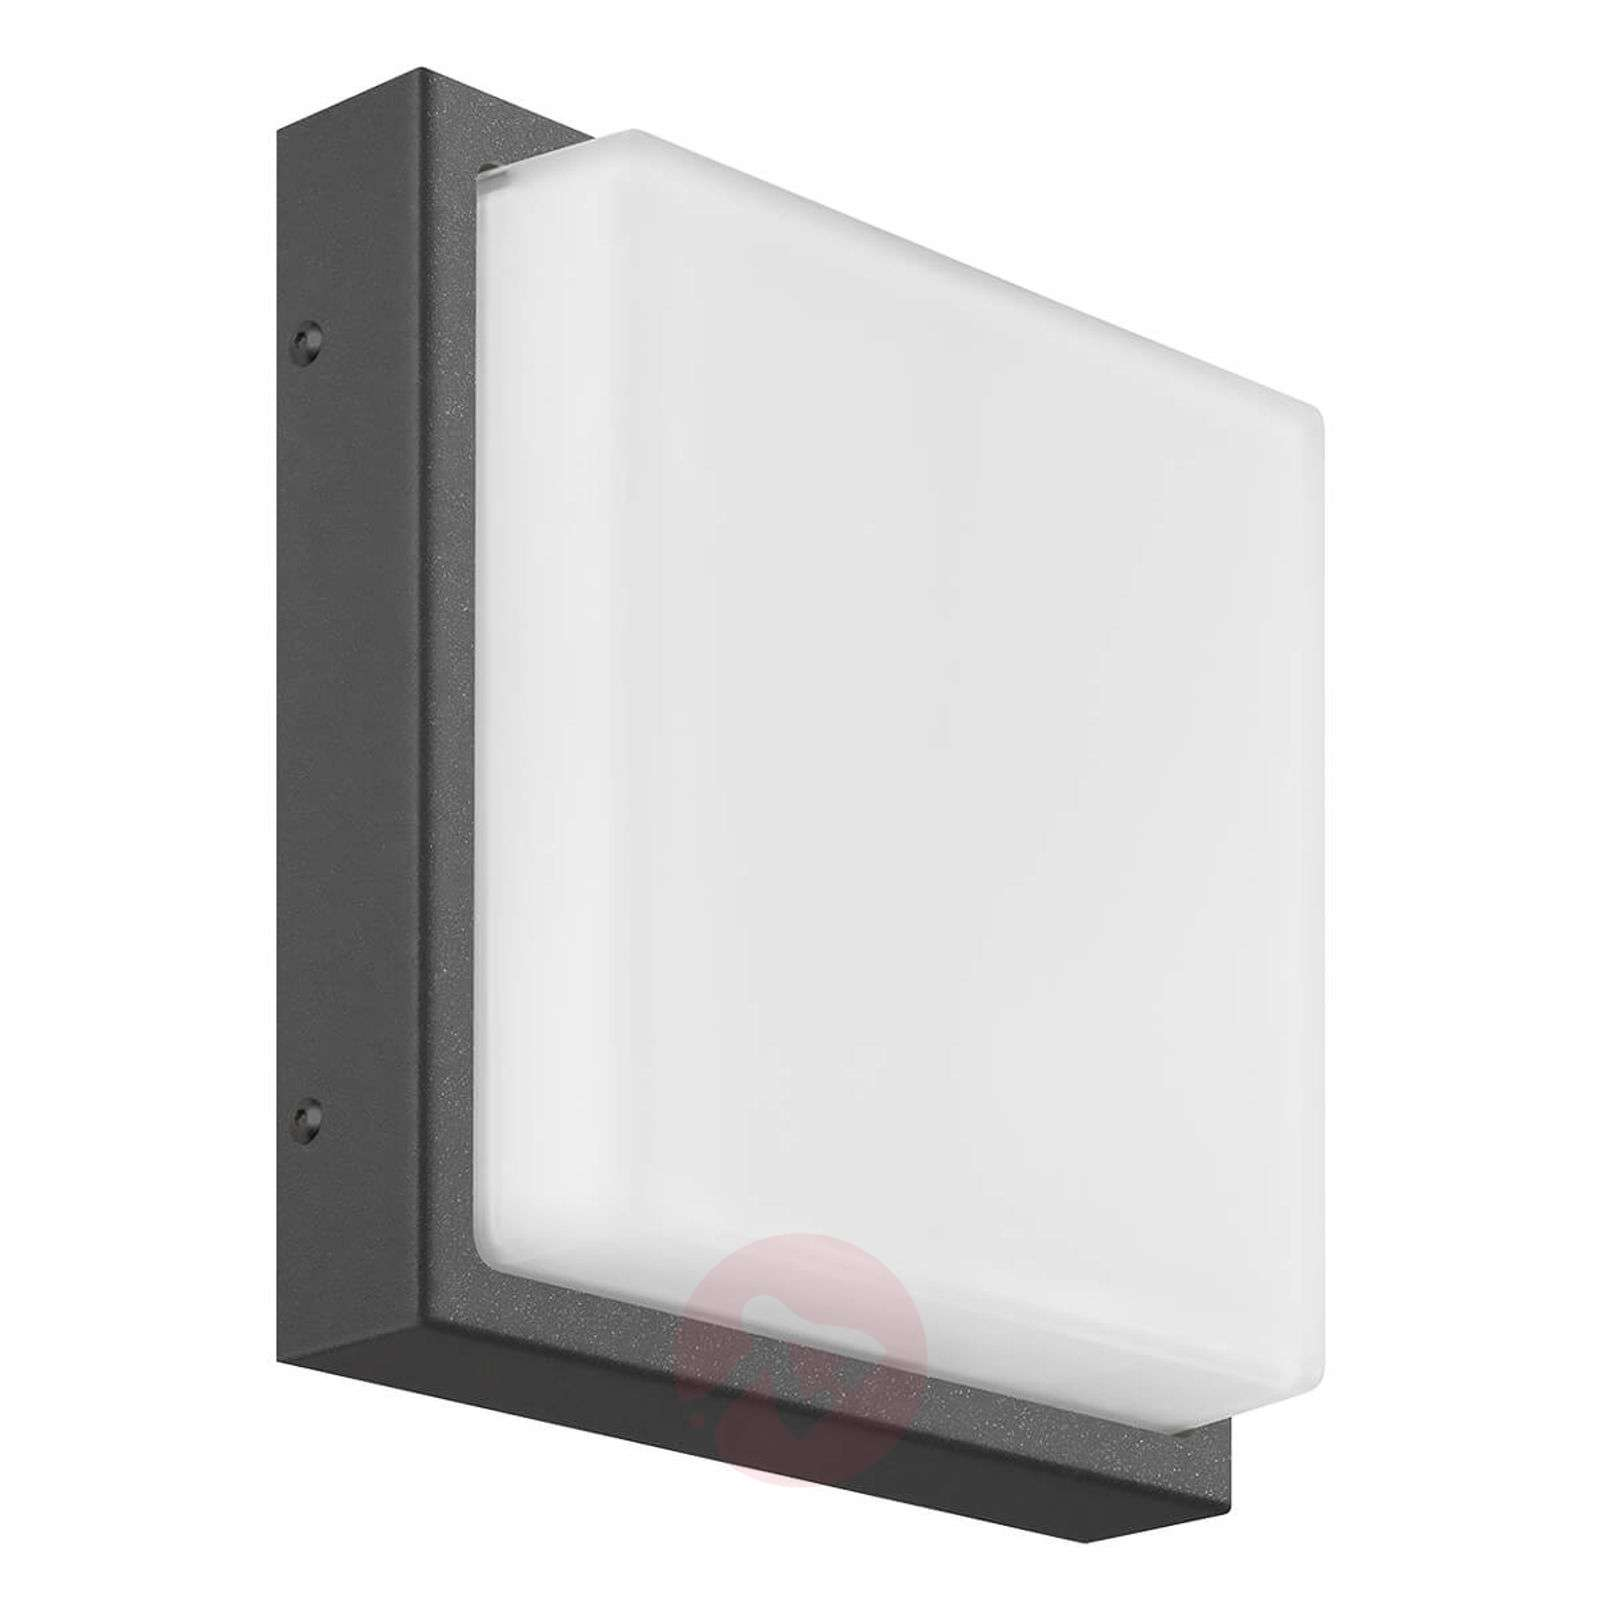 Ernest outdoor wall lamp with motion sensor-6068110-01